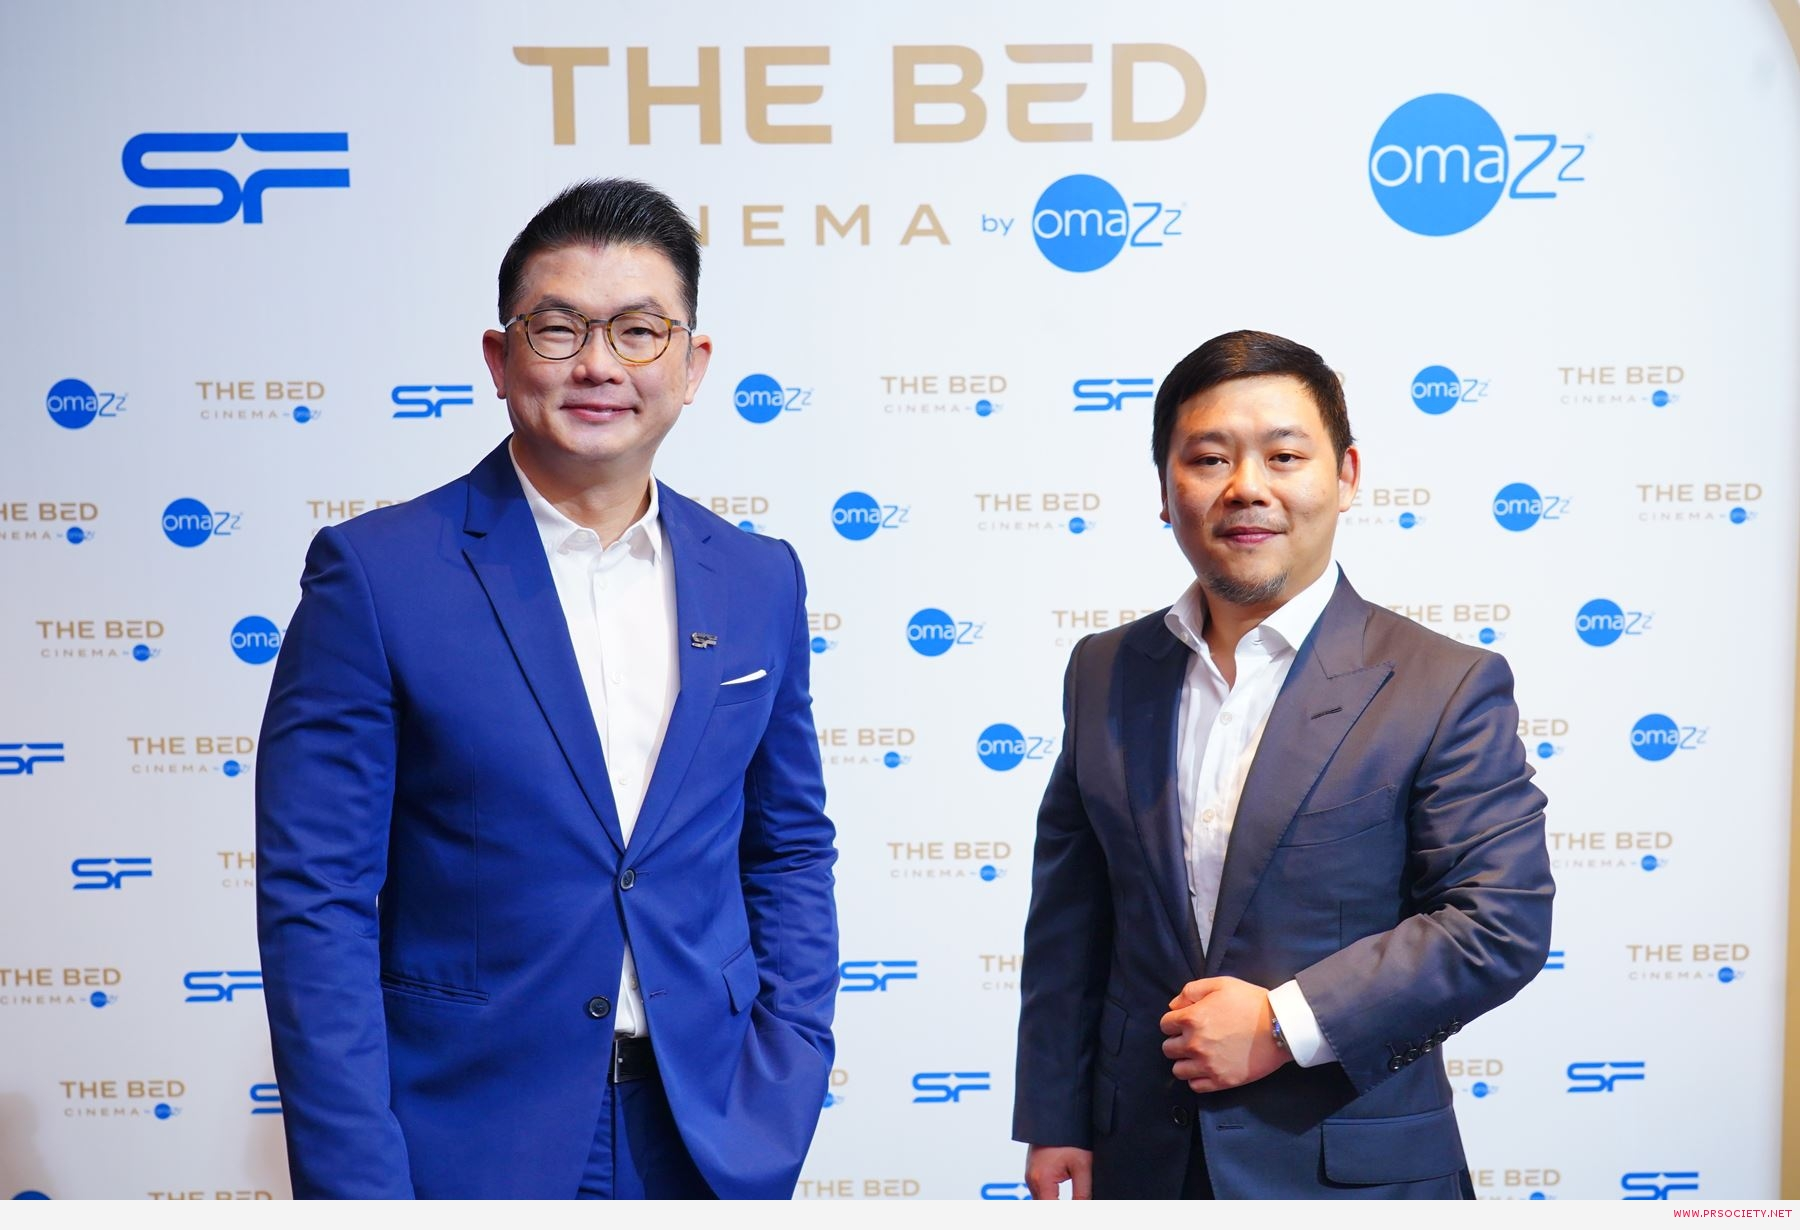 The Bed Cinema by Omazz_ผู้บริหาร SF และ Omazz 1